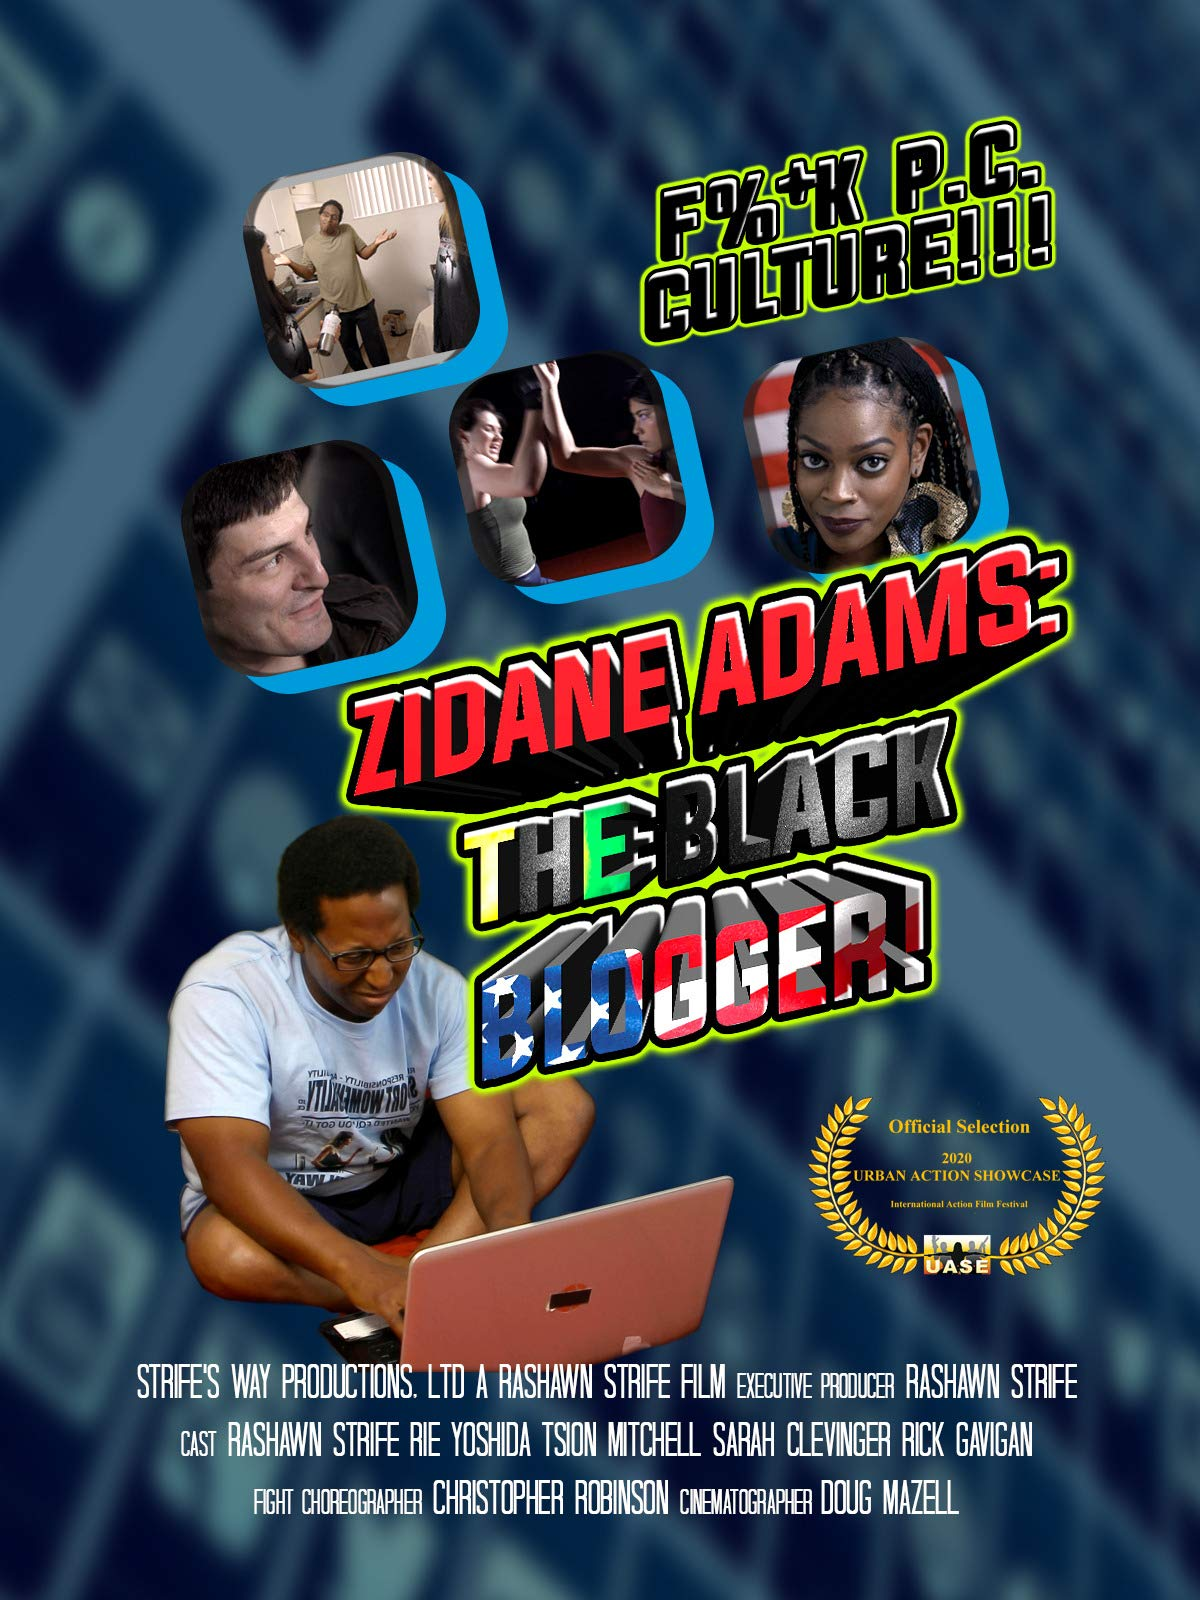 Zidane Adams: The Black Blogger!